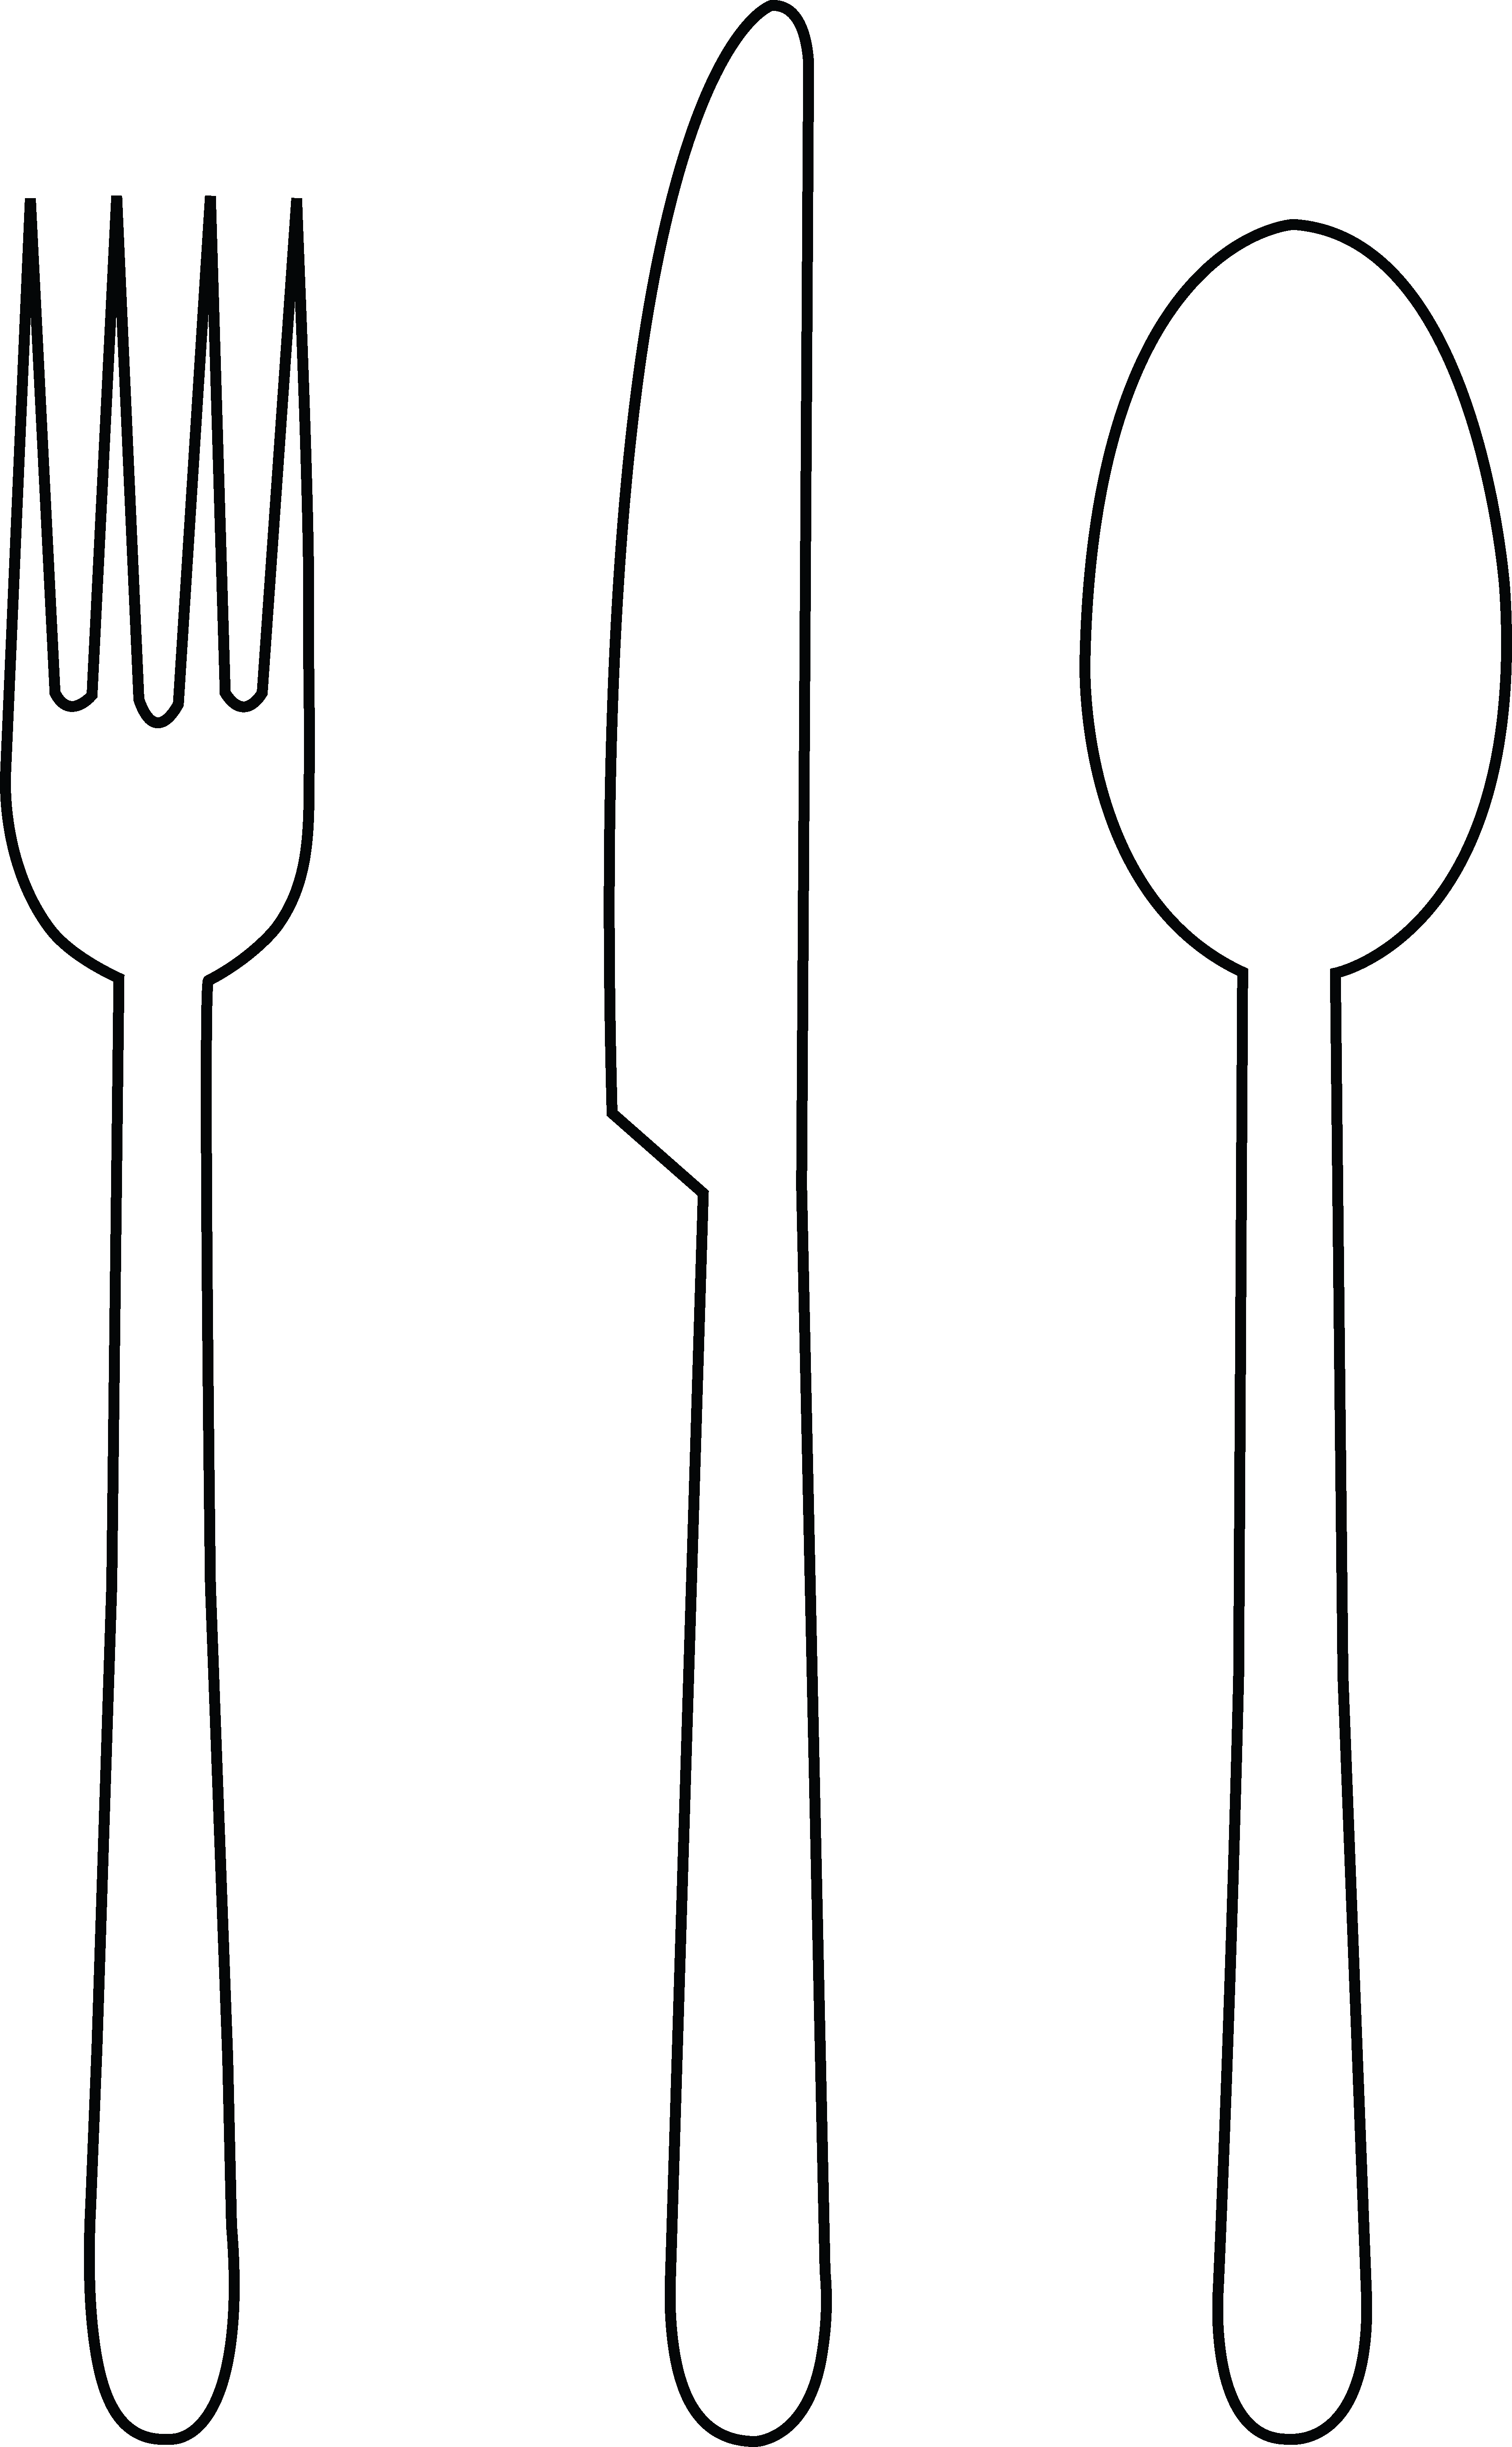 Fancy Fork Clipart Black And White · Fork Spoon And Knife Clipart - Fancy Fork PNG Black And White